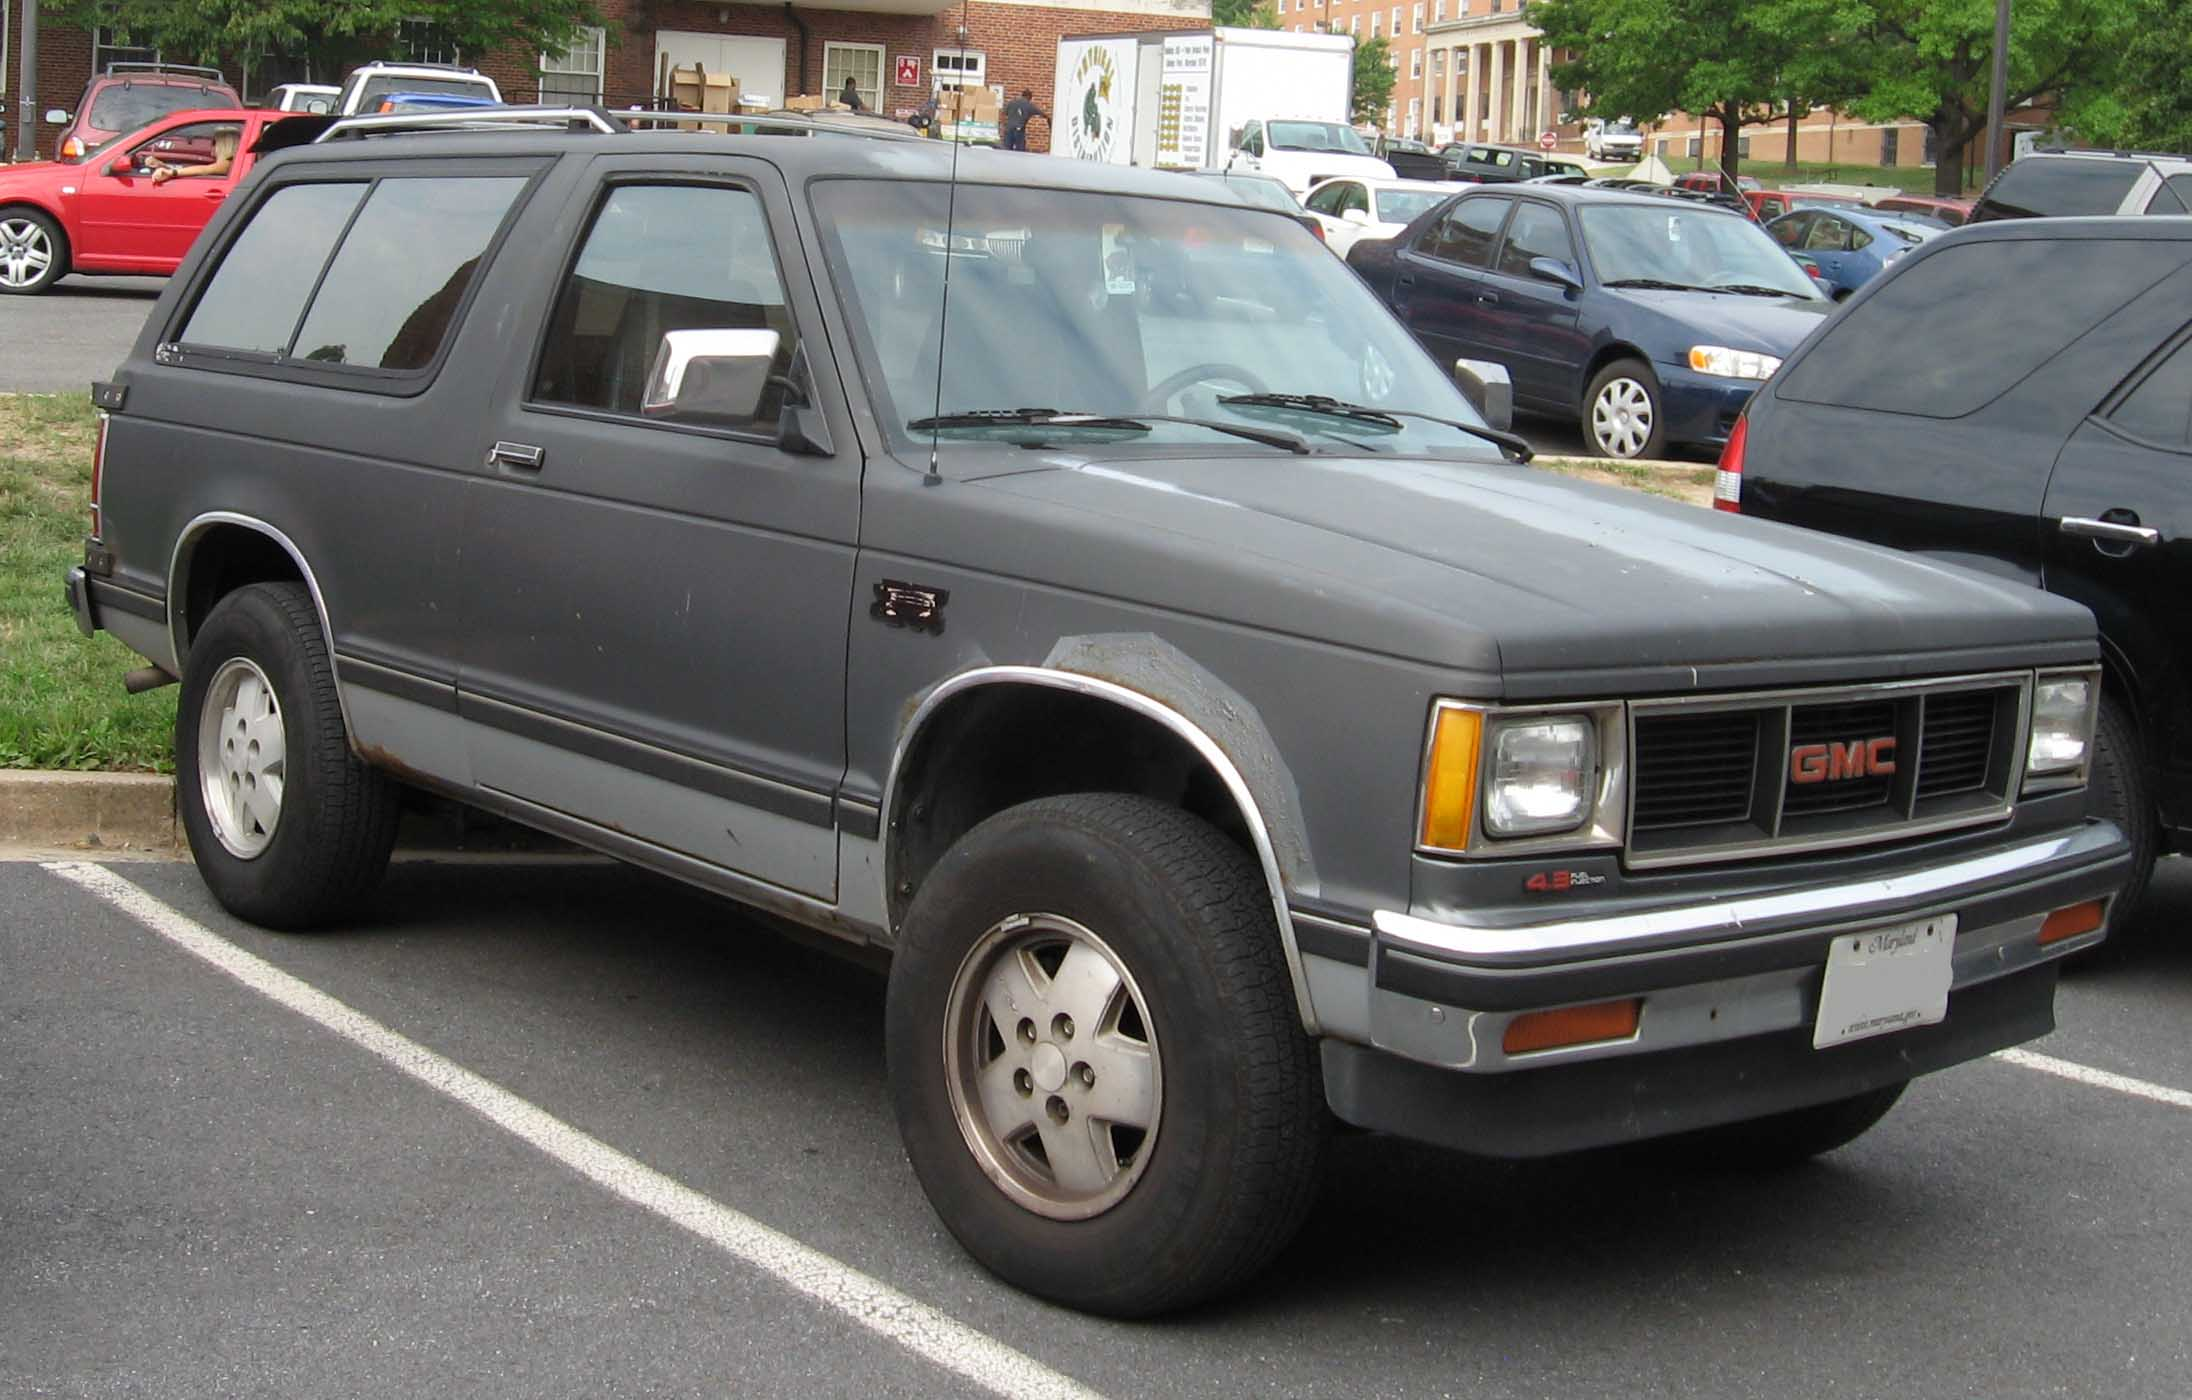 Chevrolet S 10 Blazer Photos Informations Articles 94 S10 Engine Diagram 9